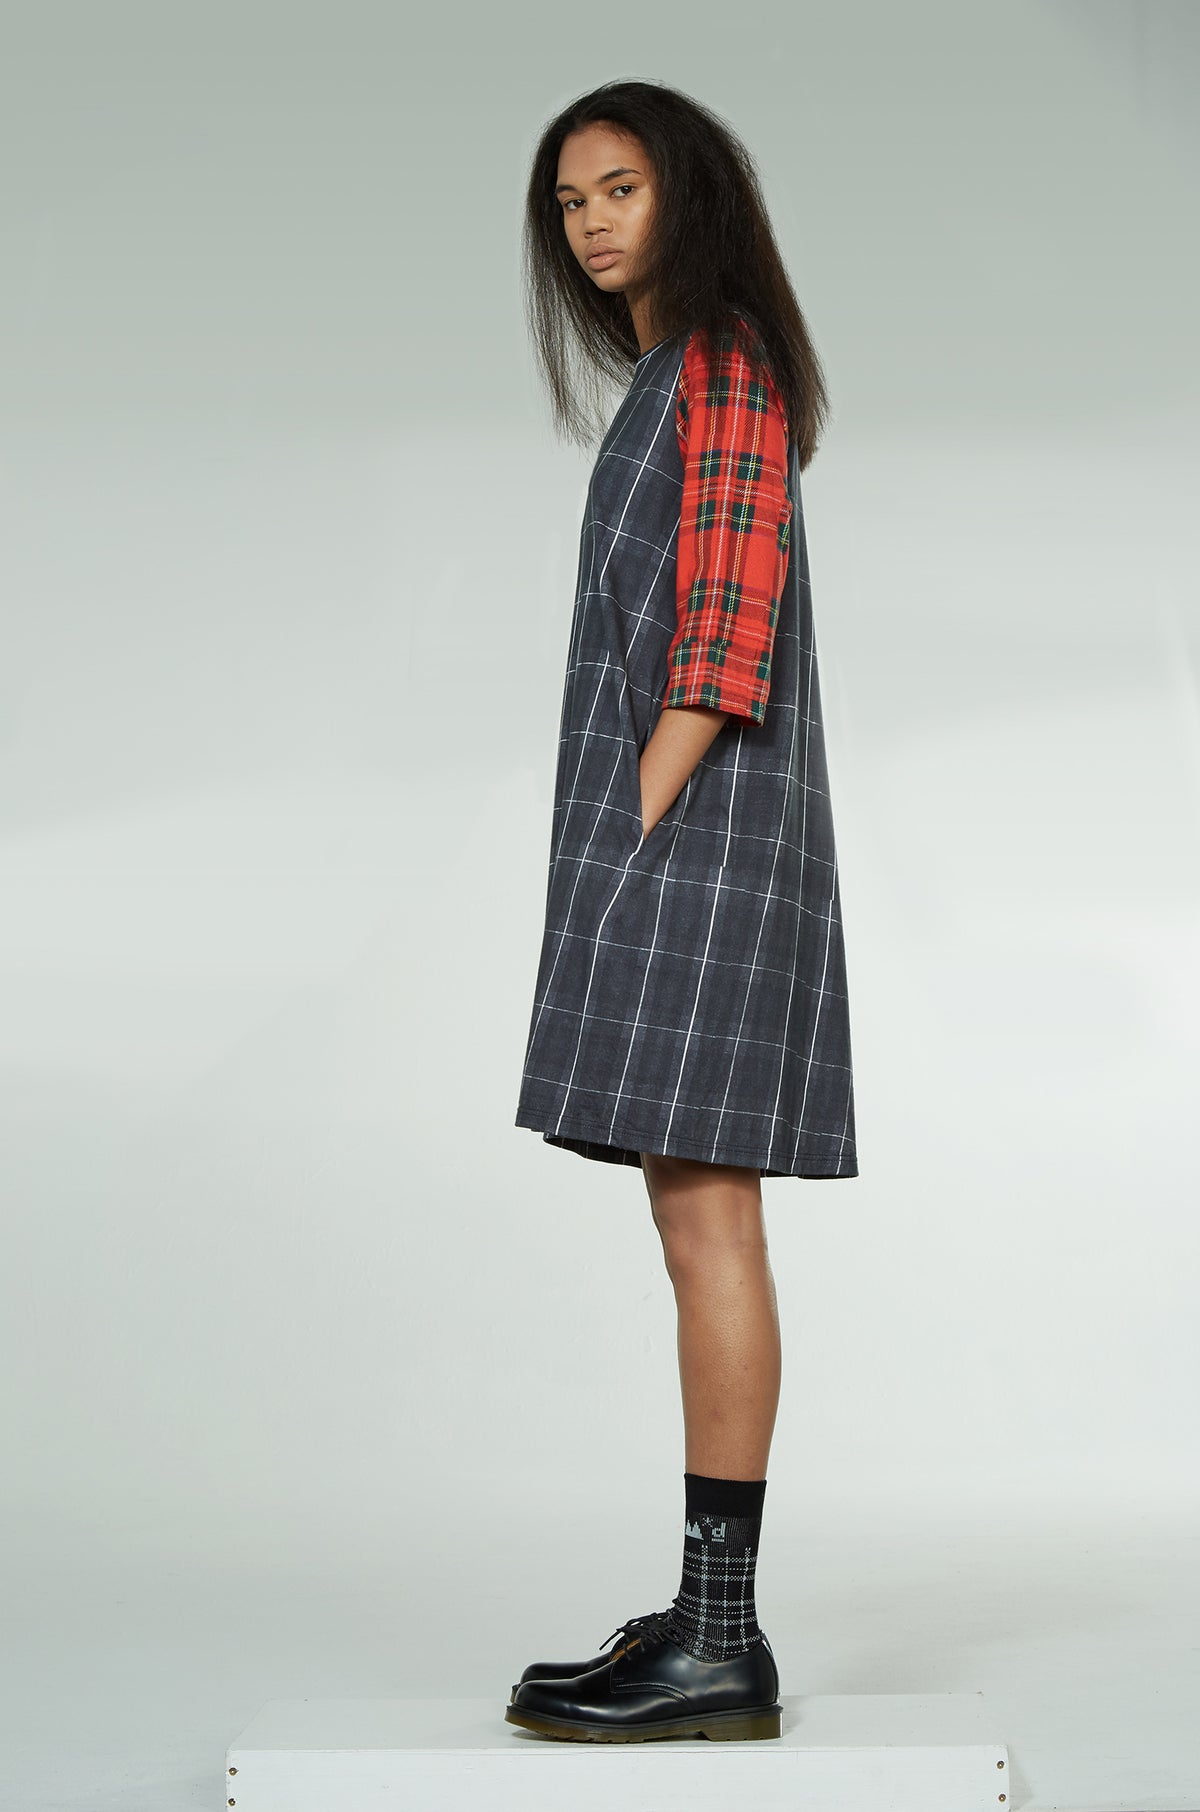 Clan Tartan Tunic Nom*d Stockists Shop Online Made in New Zealand NZ Designer Clothing Auckland Parnell Nom d archive Summer 2017